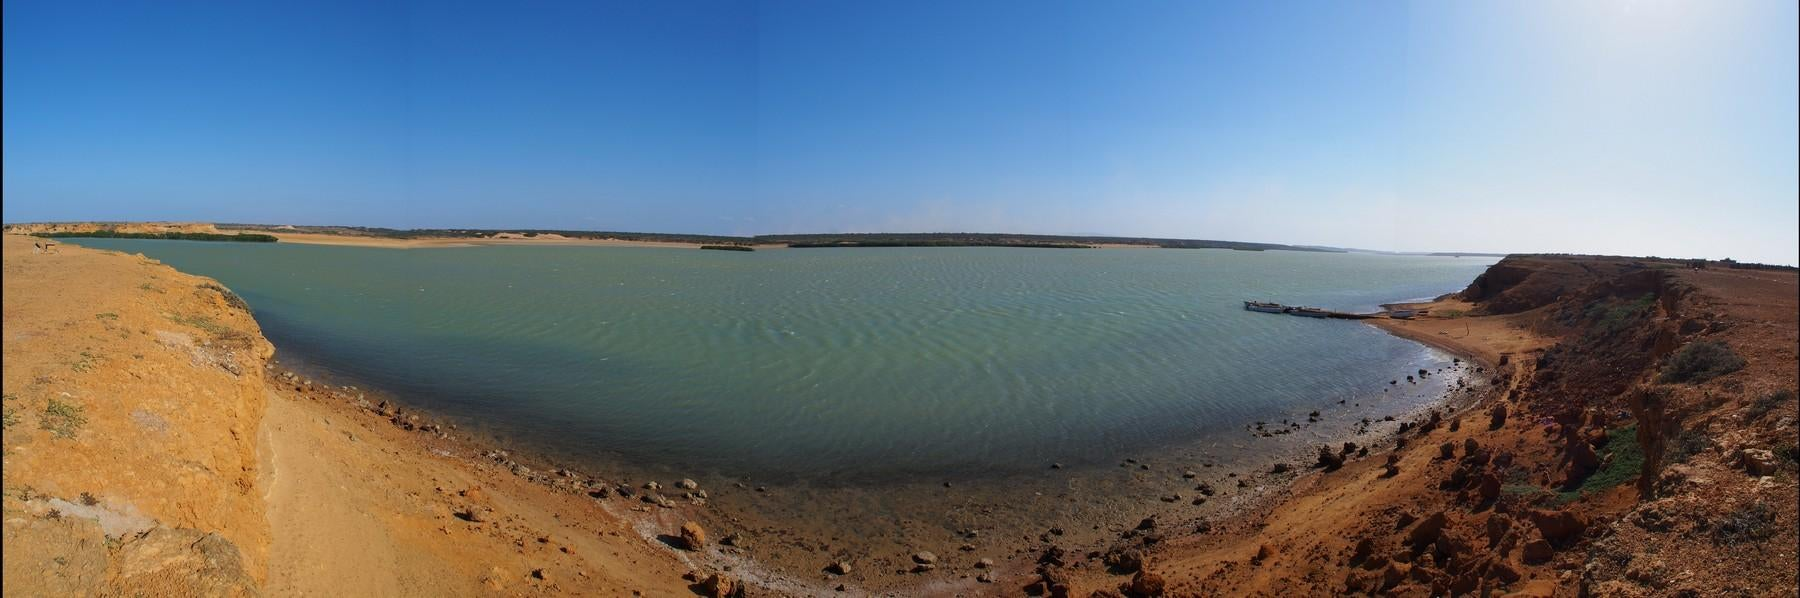 Mar en Punta Gallinas